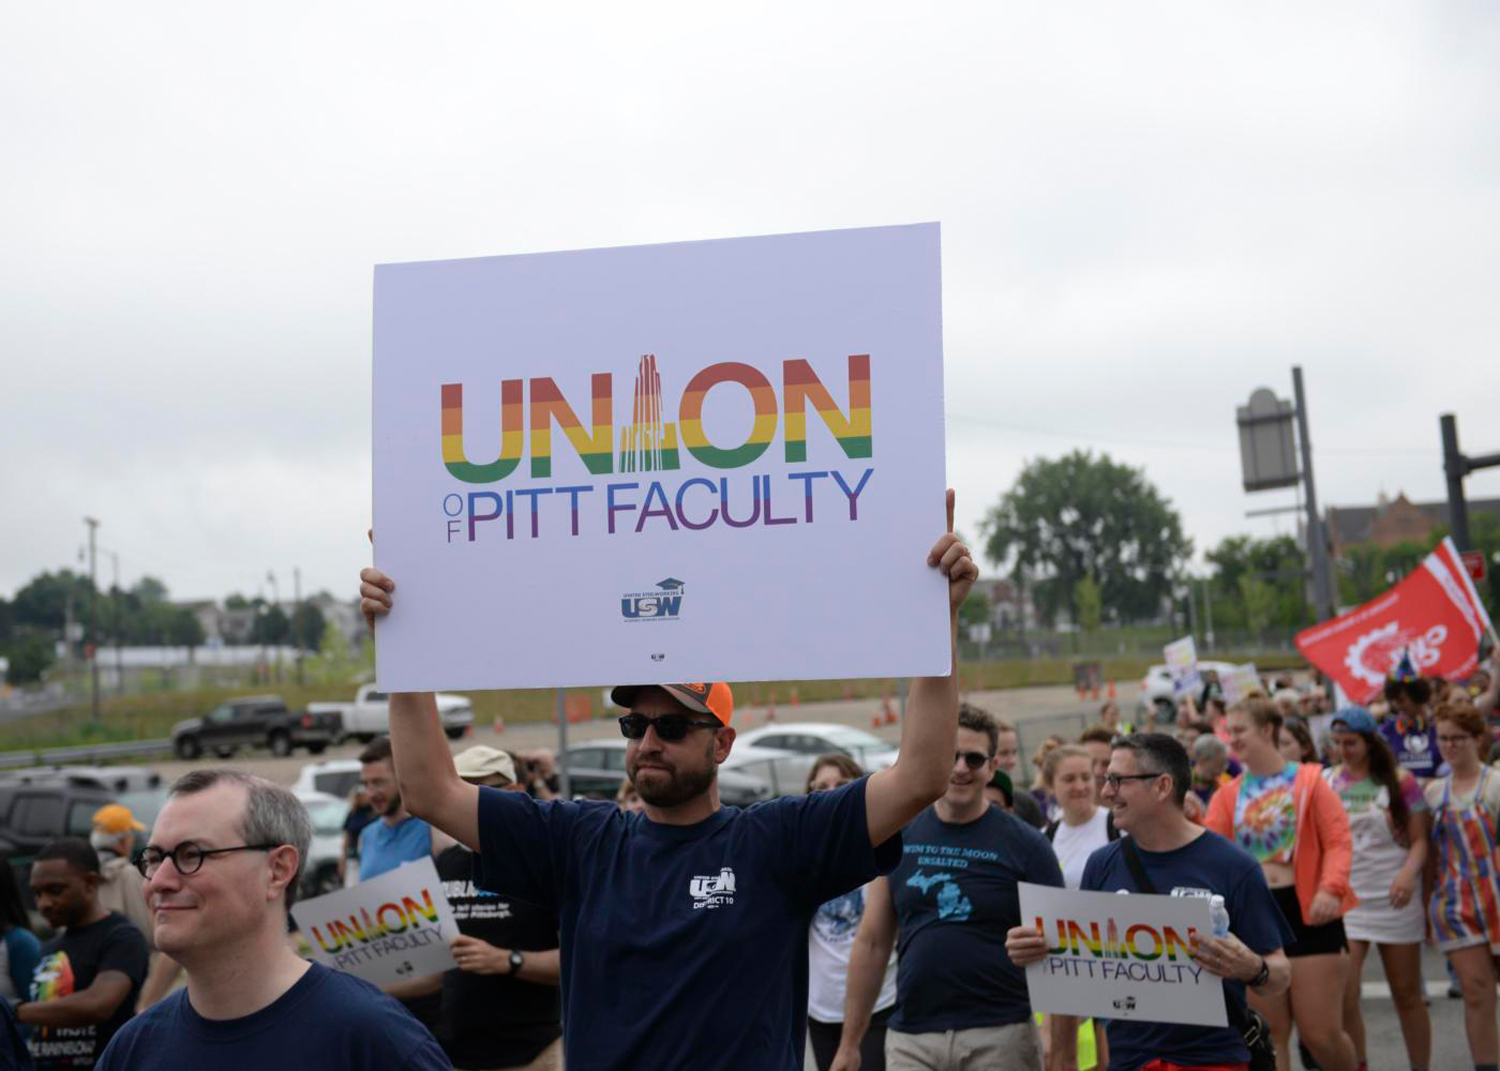 The Pennsylvania Labor Relations Board has declined to hold a hearing on Pitt faculty organizers' election petition.